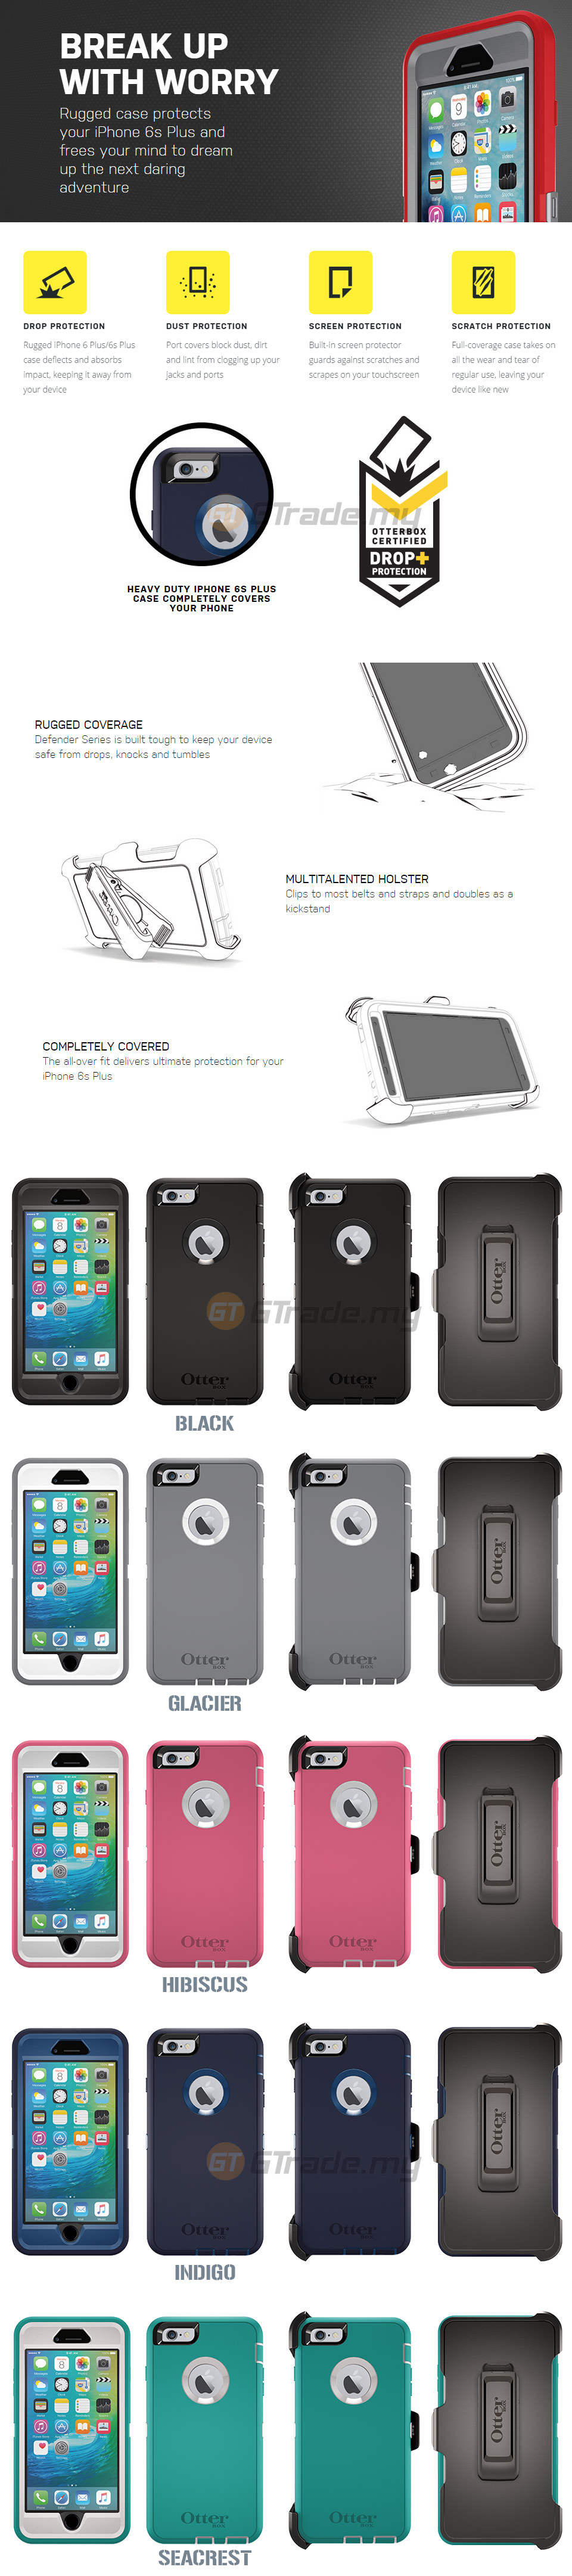 otterbox-defender-heavy-duty-tough-belt-clip-holster-stand-case-apple-iphone-6s-6-plus-p